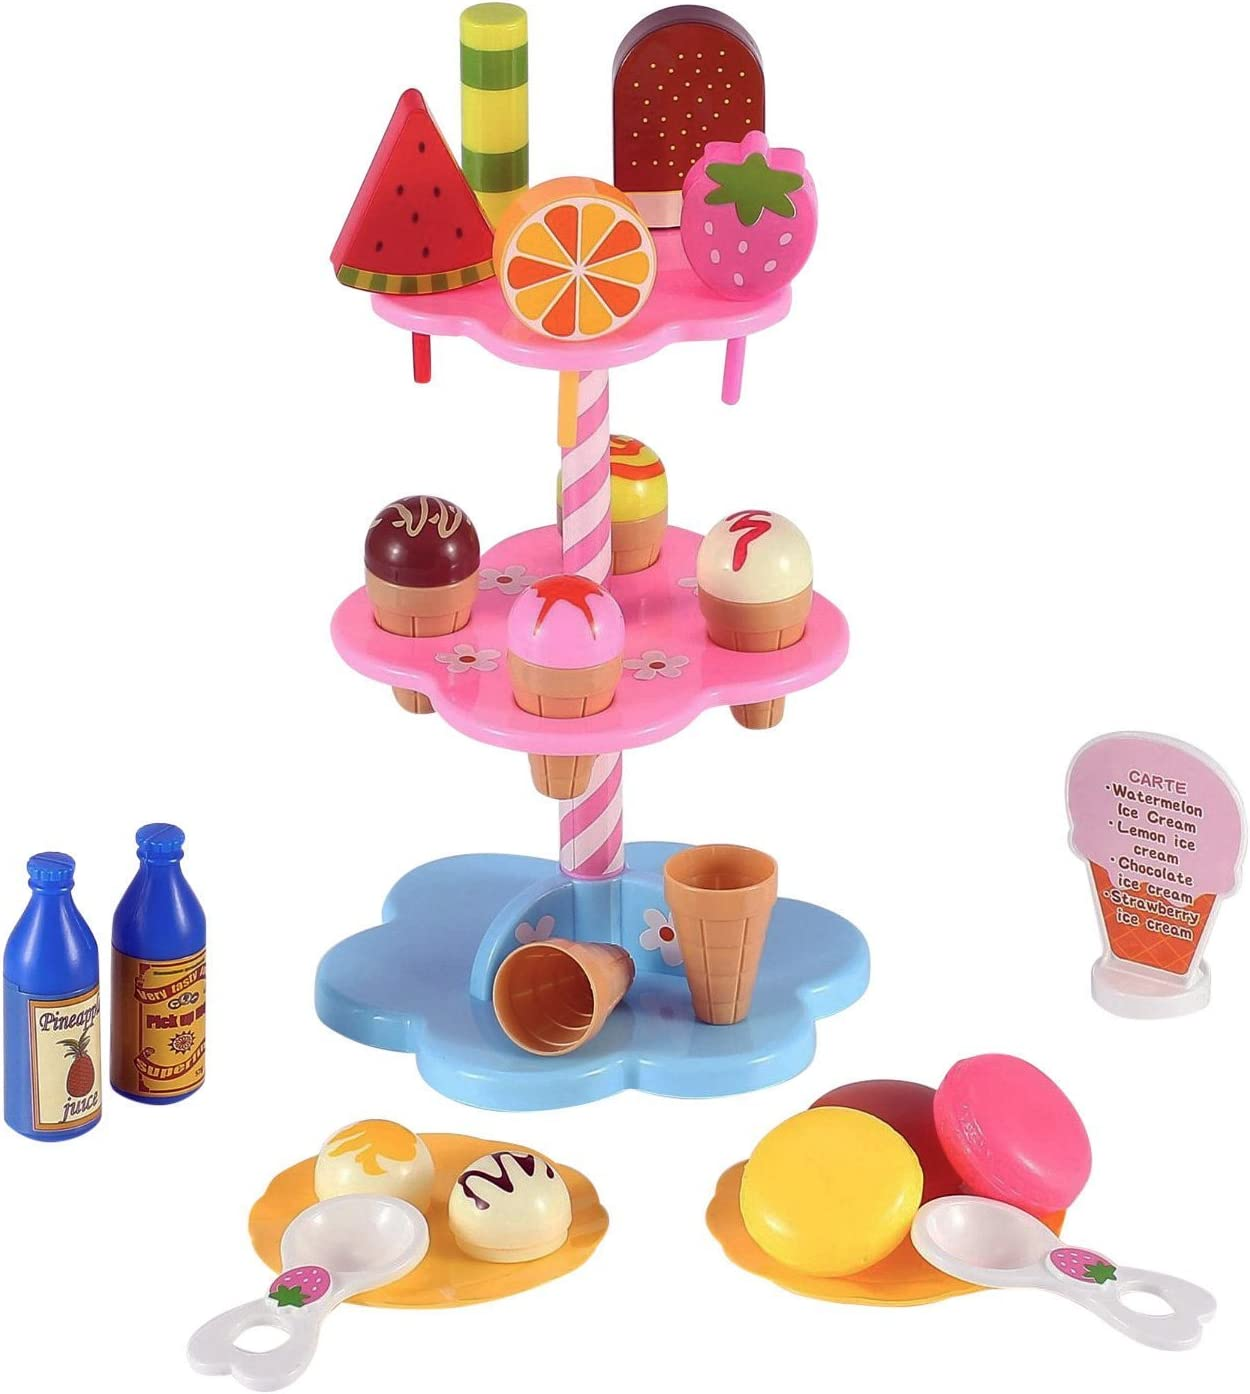 Liberty Imports Sweet Treats Ice Cream and Desserts Tower Stand - Pretend Play Food Toy Set for Kids (22 Pcs)